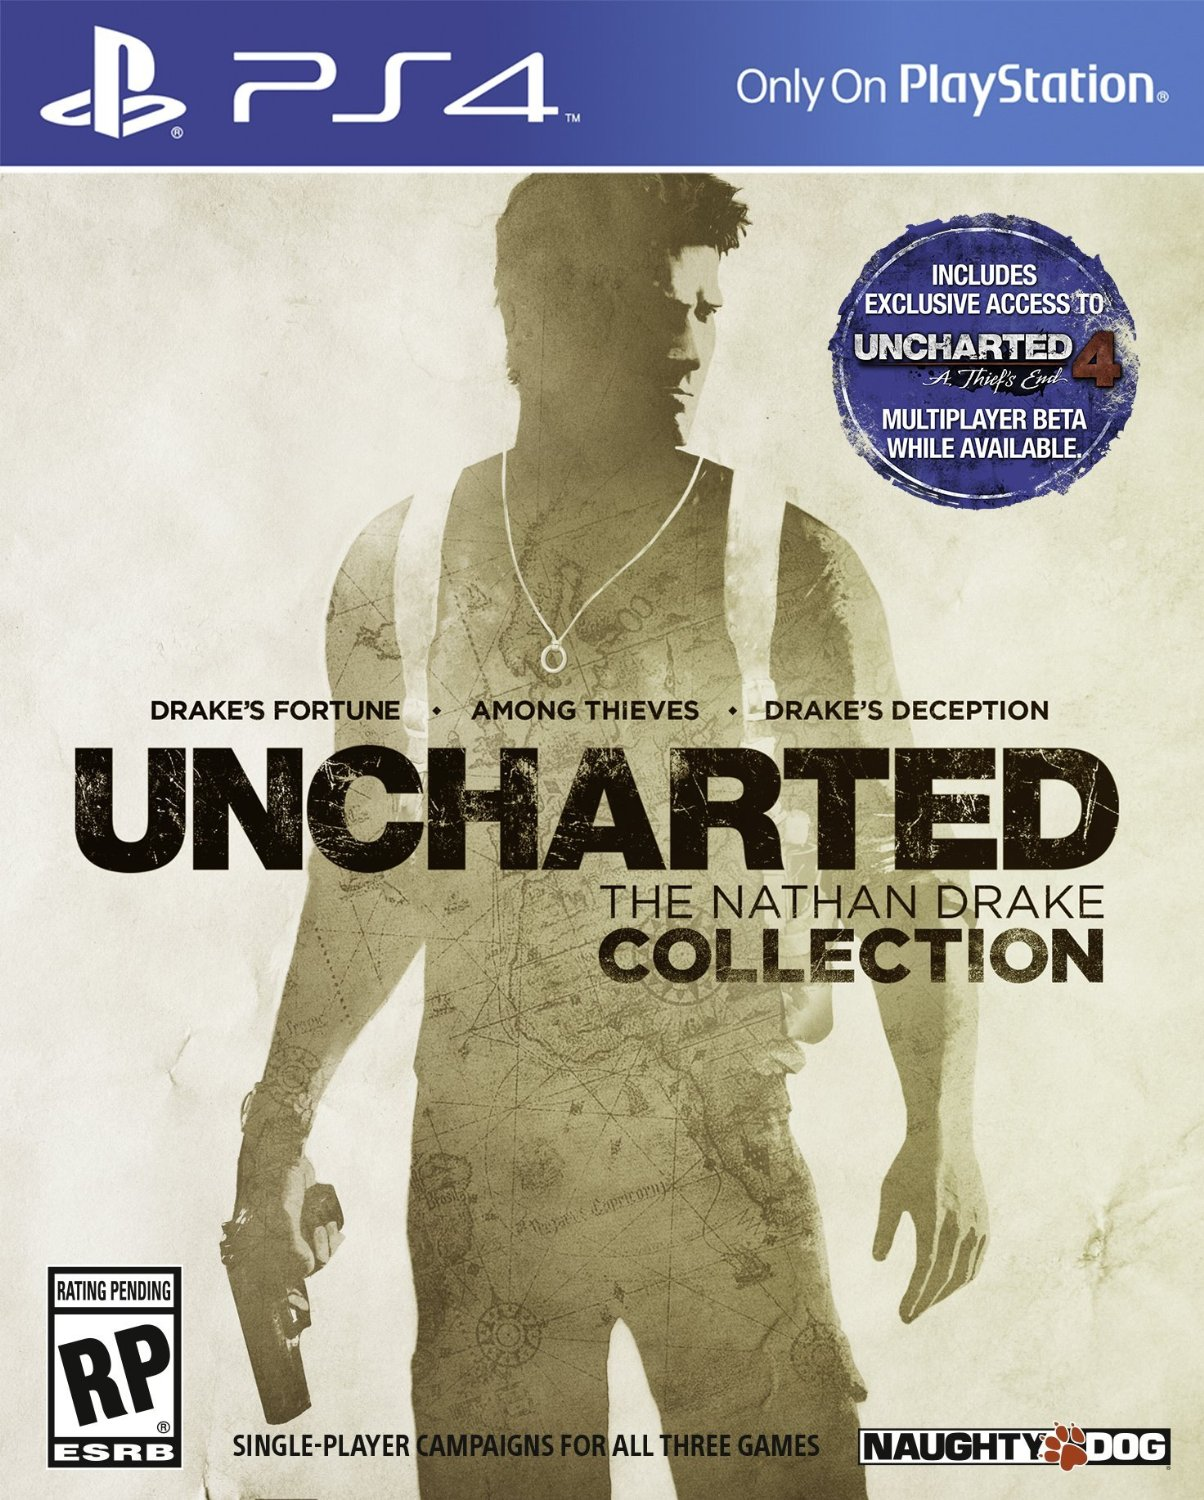 PS4 3 em 1 UNCHARTED The Nathan Drake Collection em Portugues e